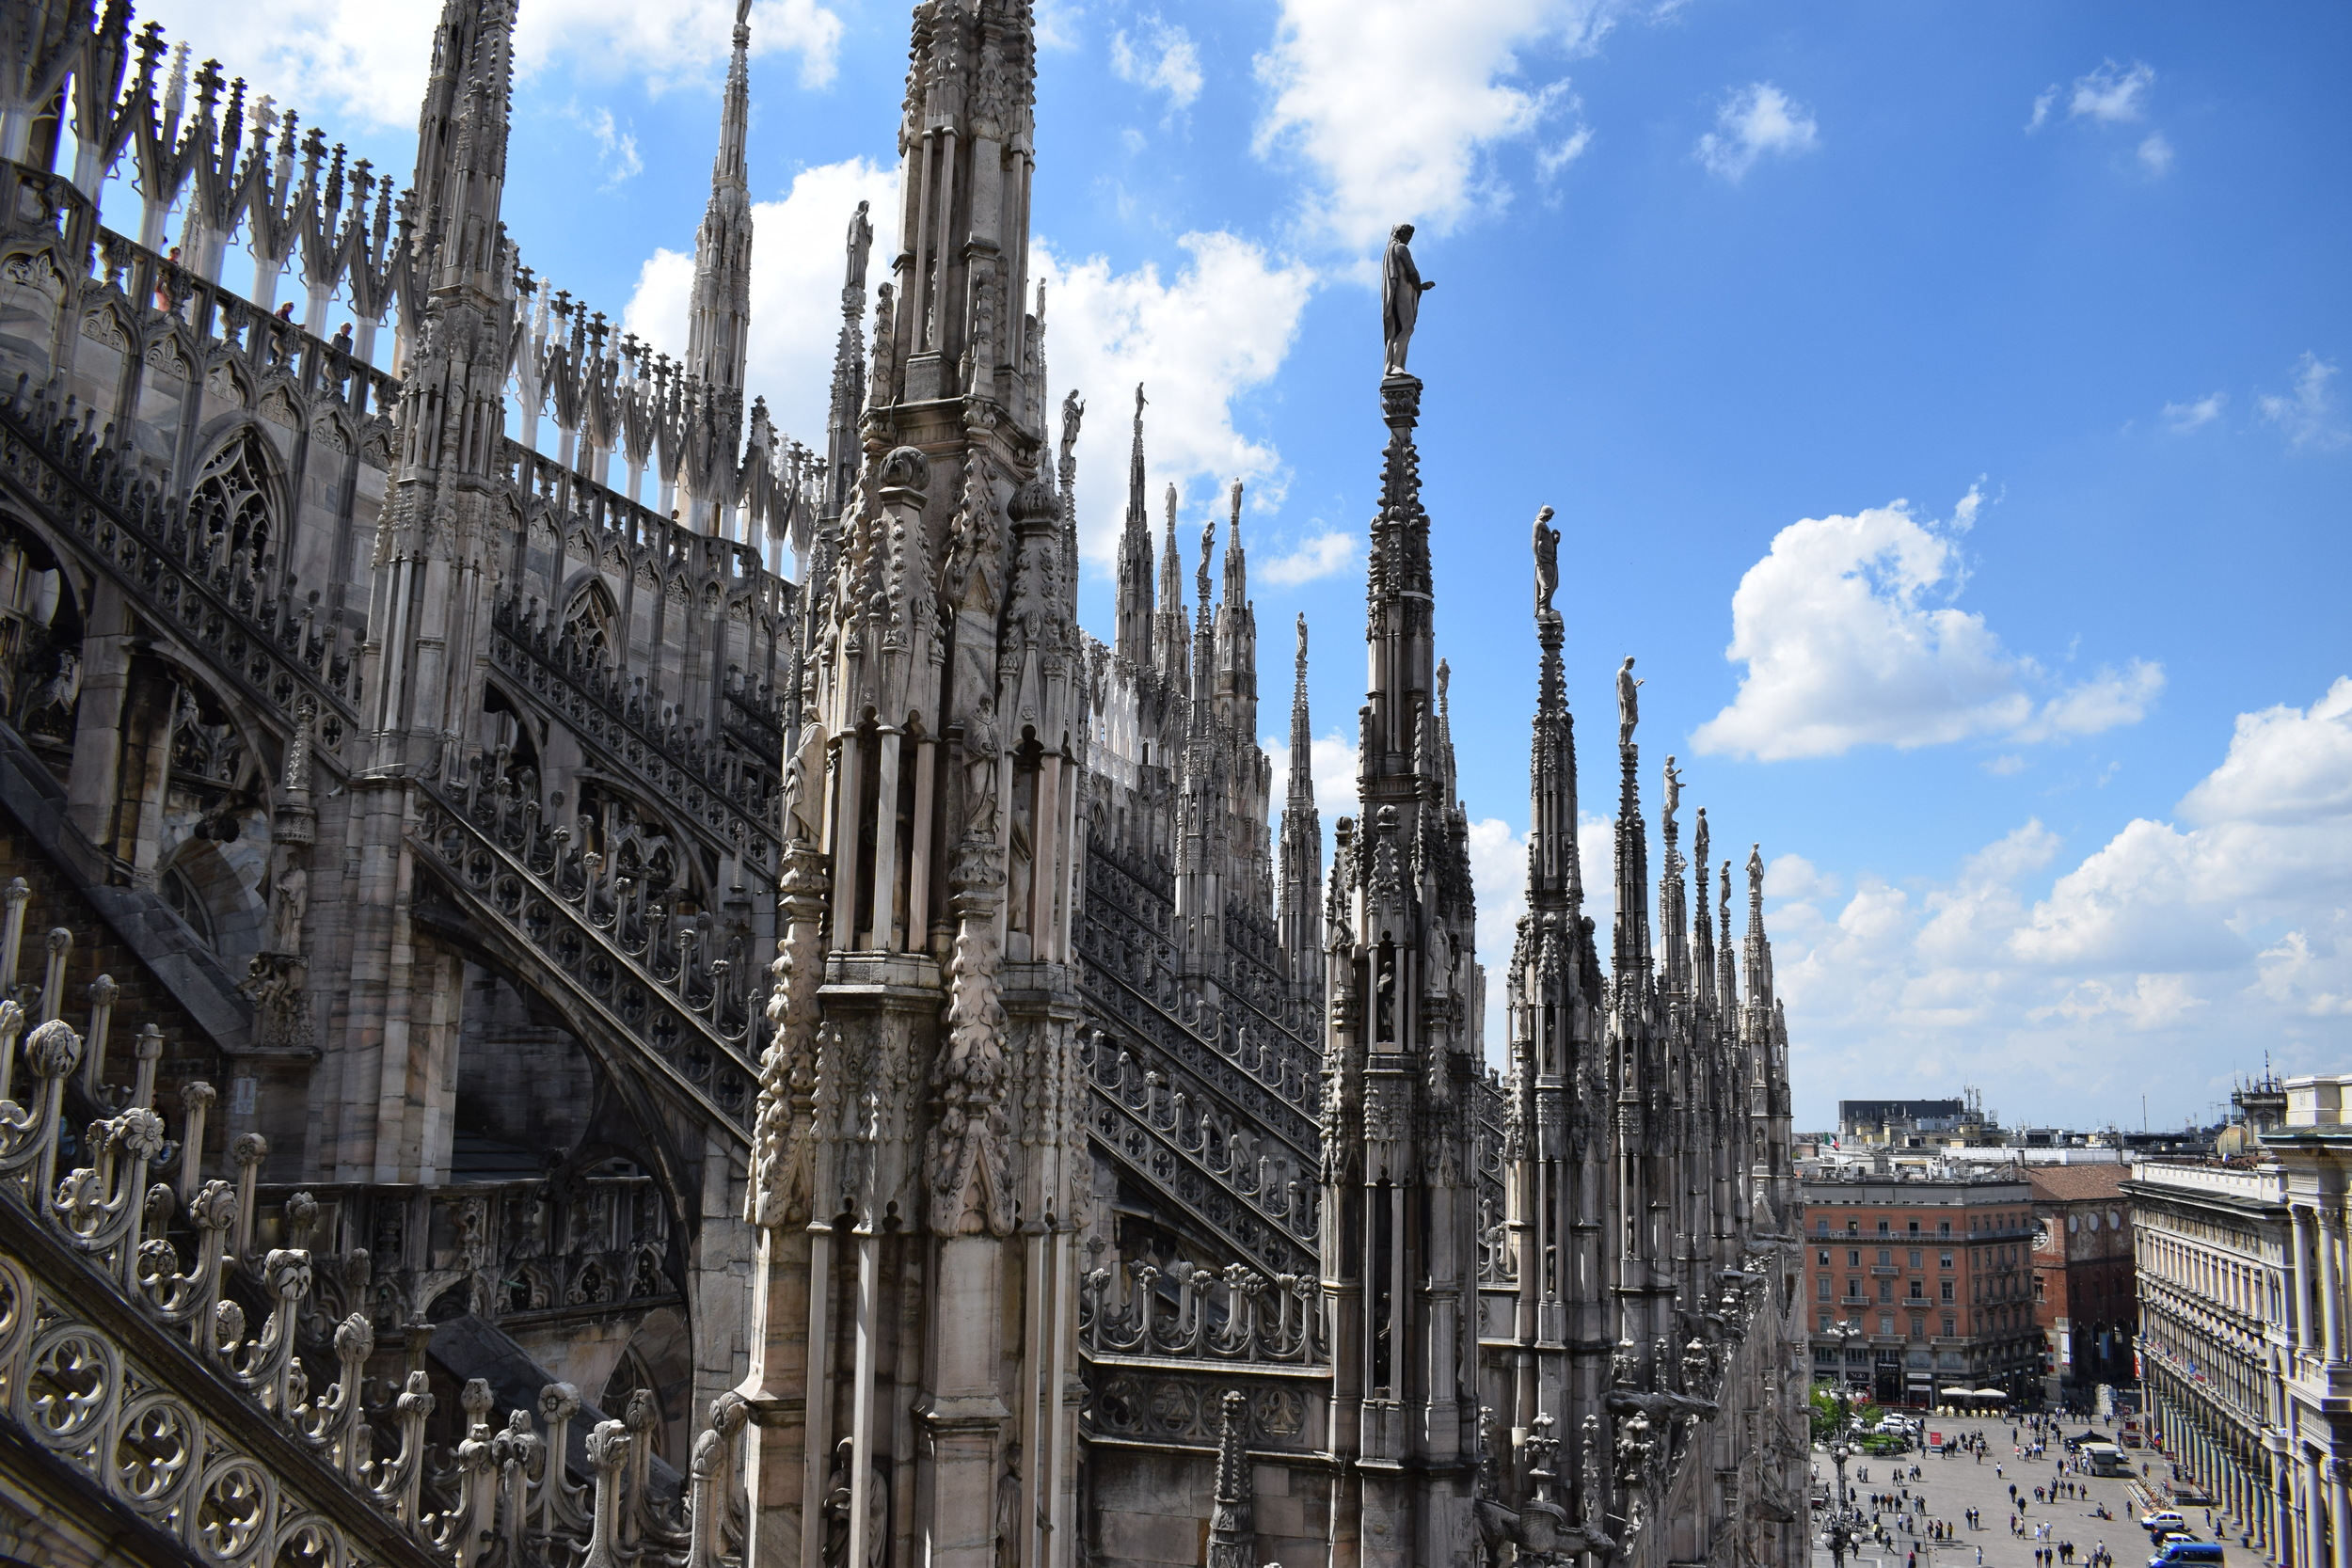 Milan Cathedral's spires give it its distinctive look.